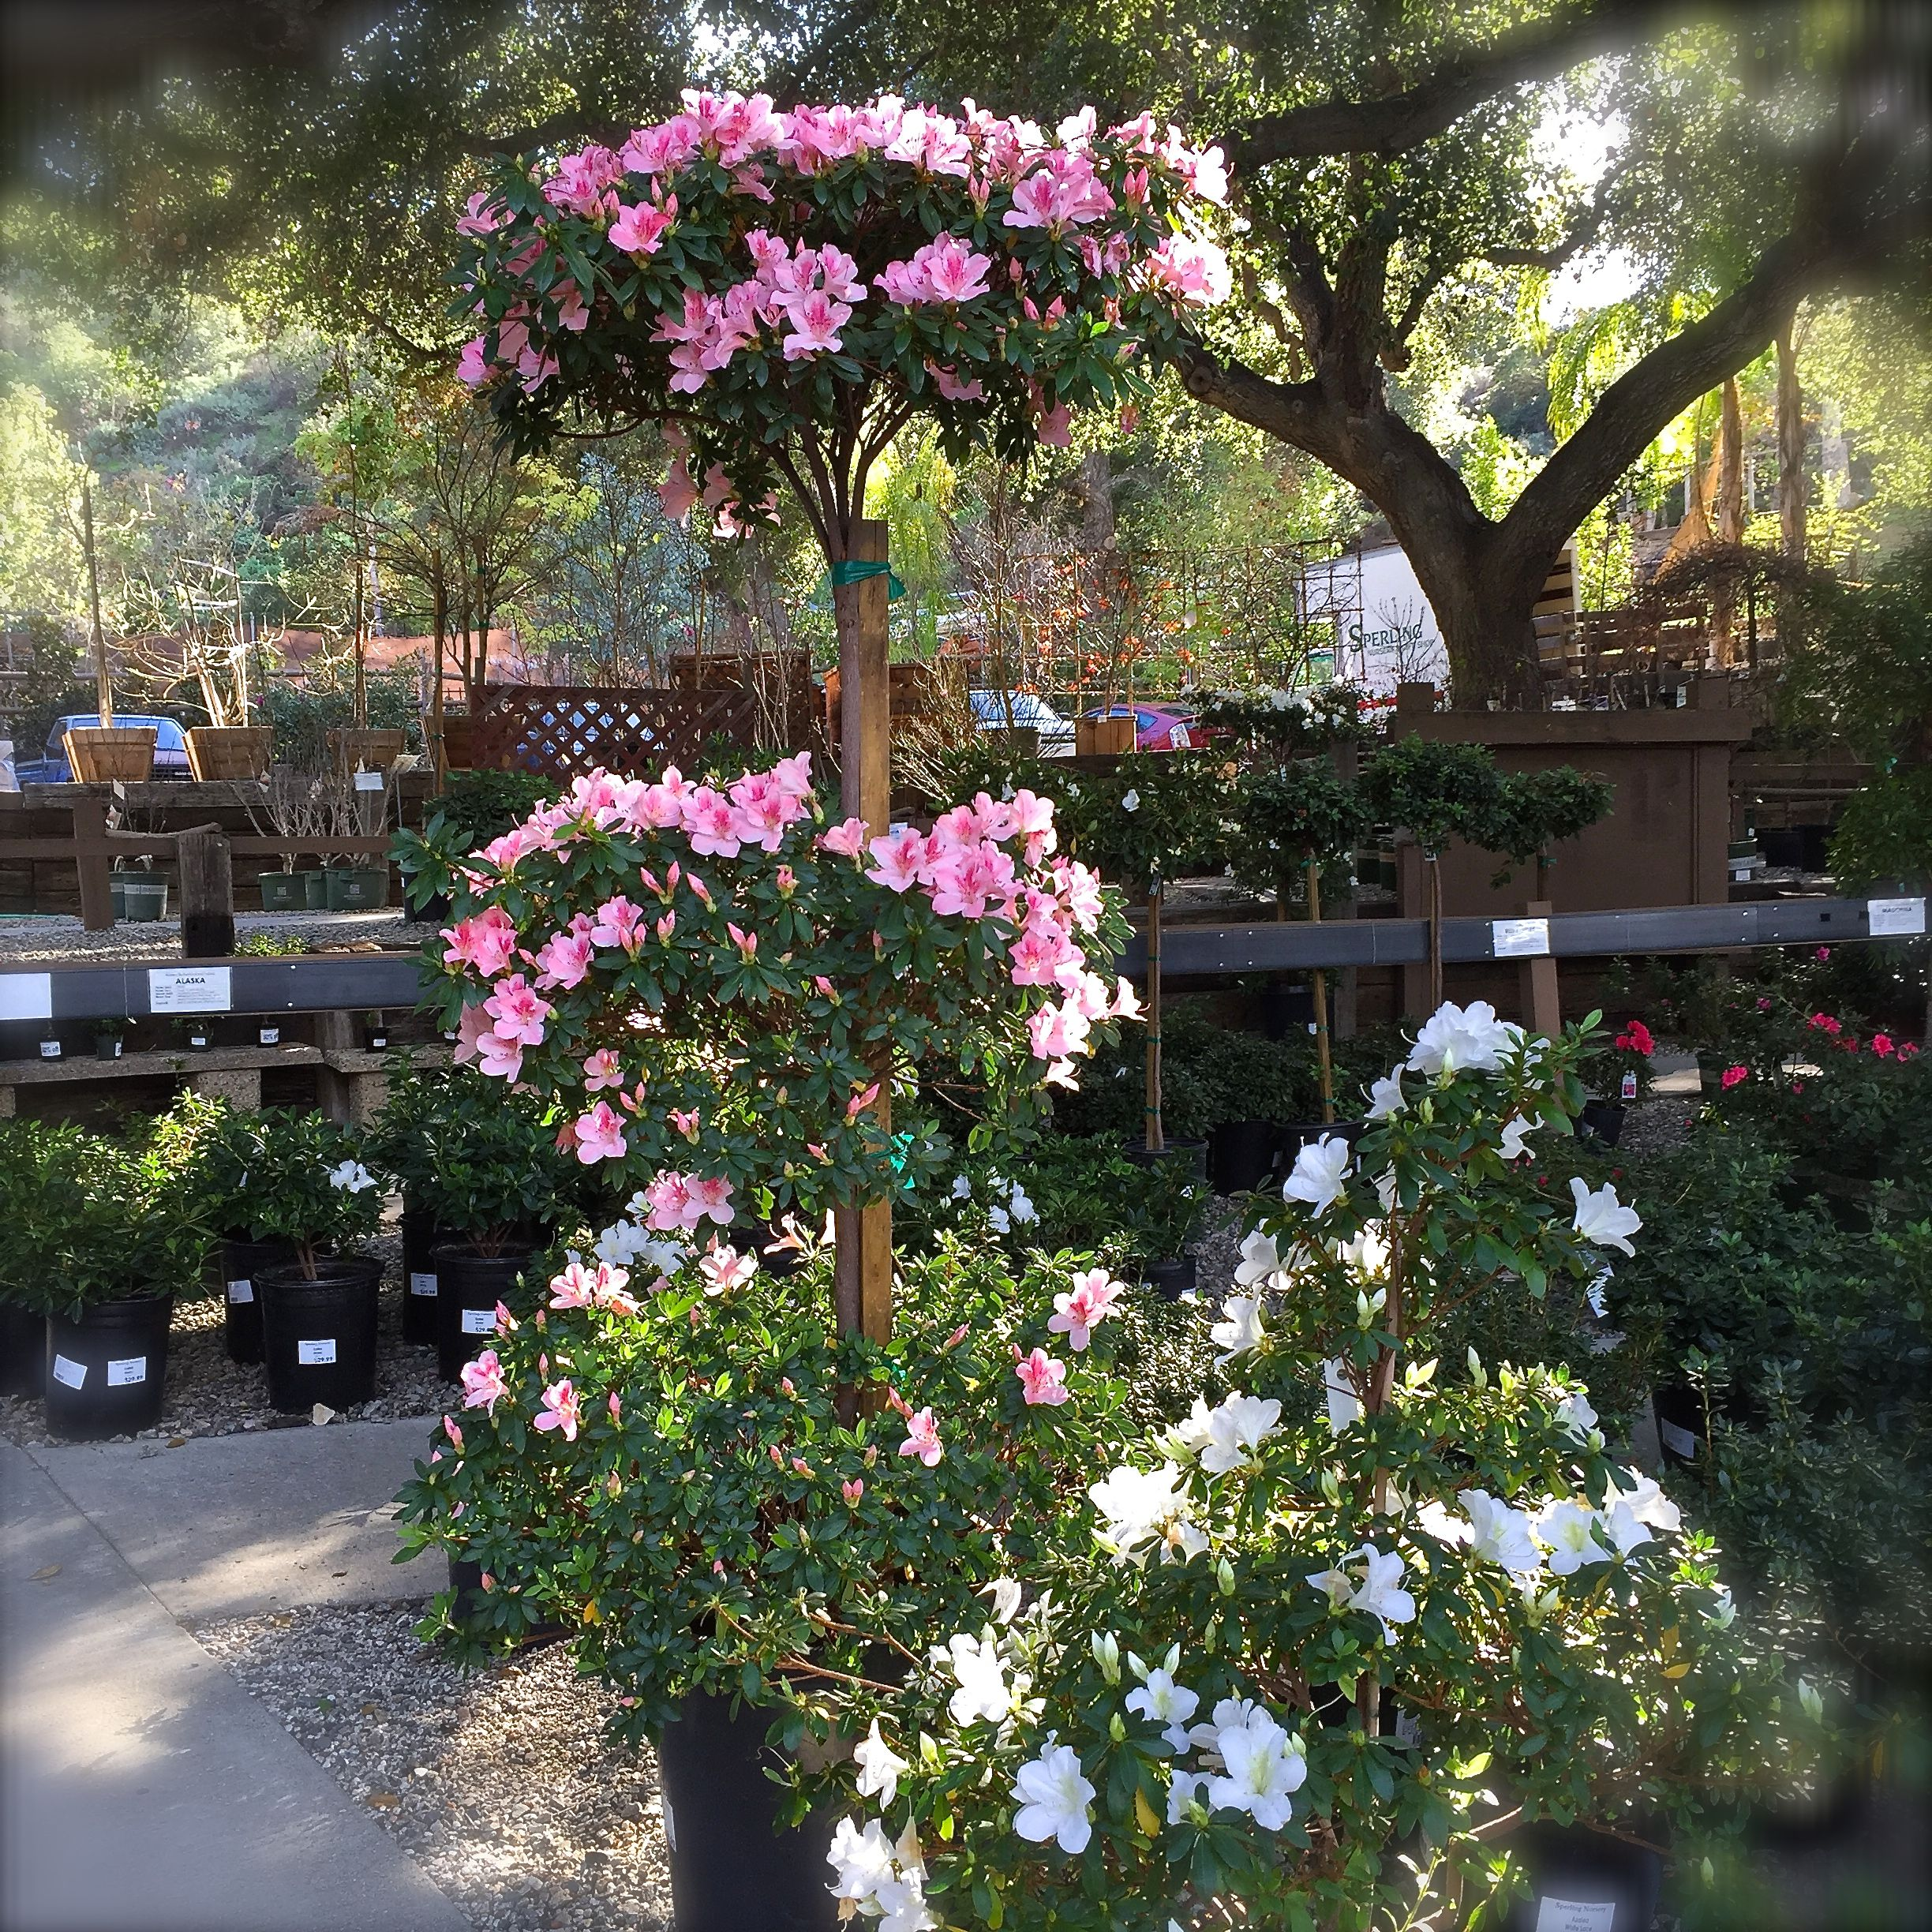 Azalea Pink Lace Tree With An Azalea White Lace Shrub Lace Trees Azaleas Plants